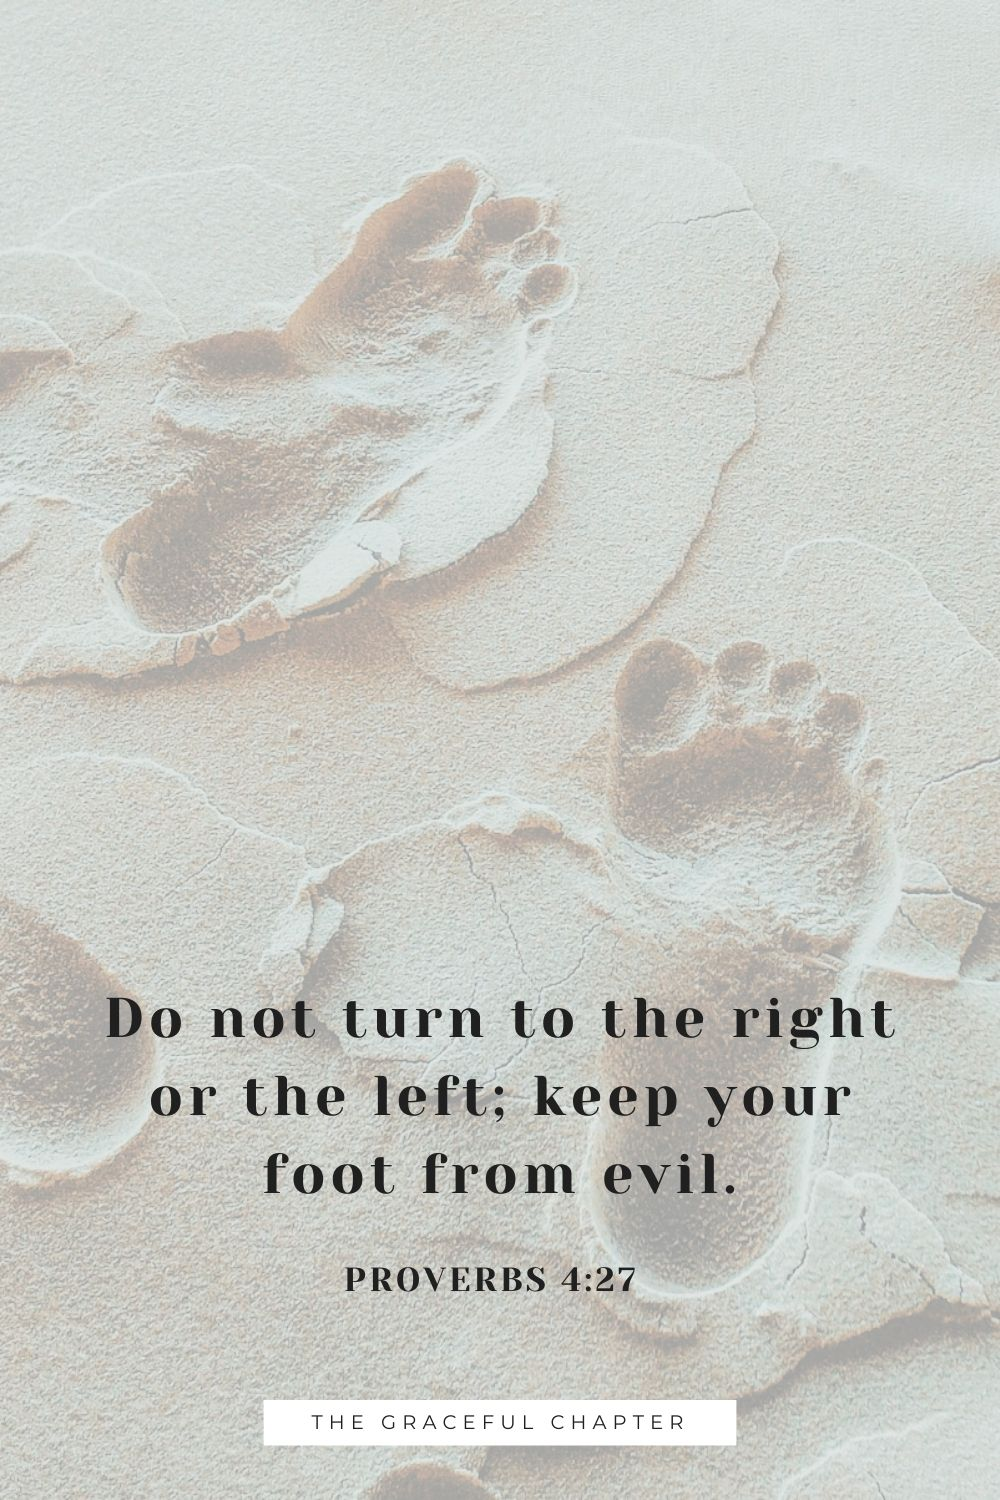 Do not turn to the right or the left; keep your foot from evil. Proverbs 4:27